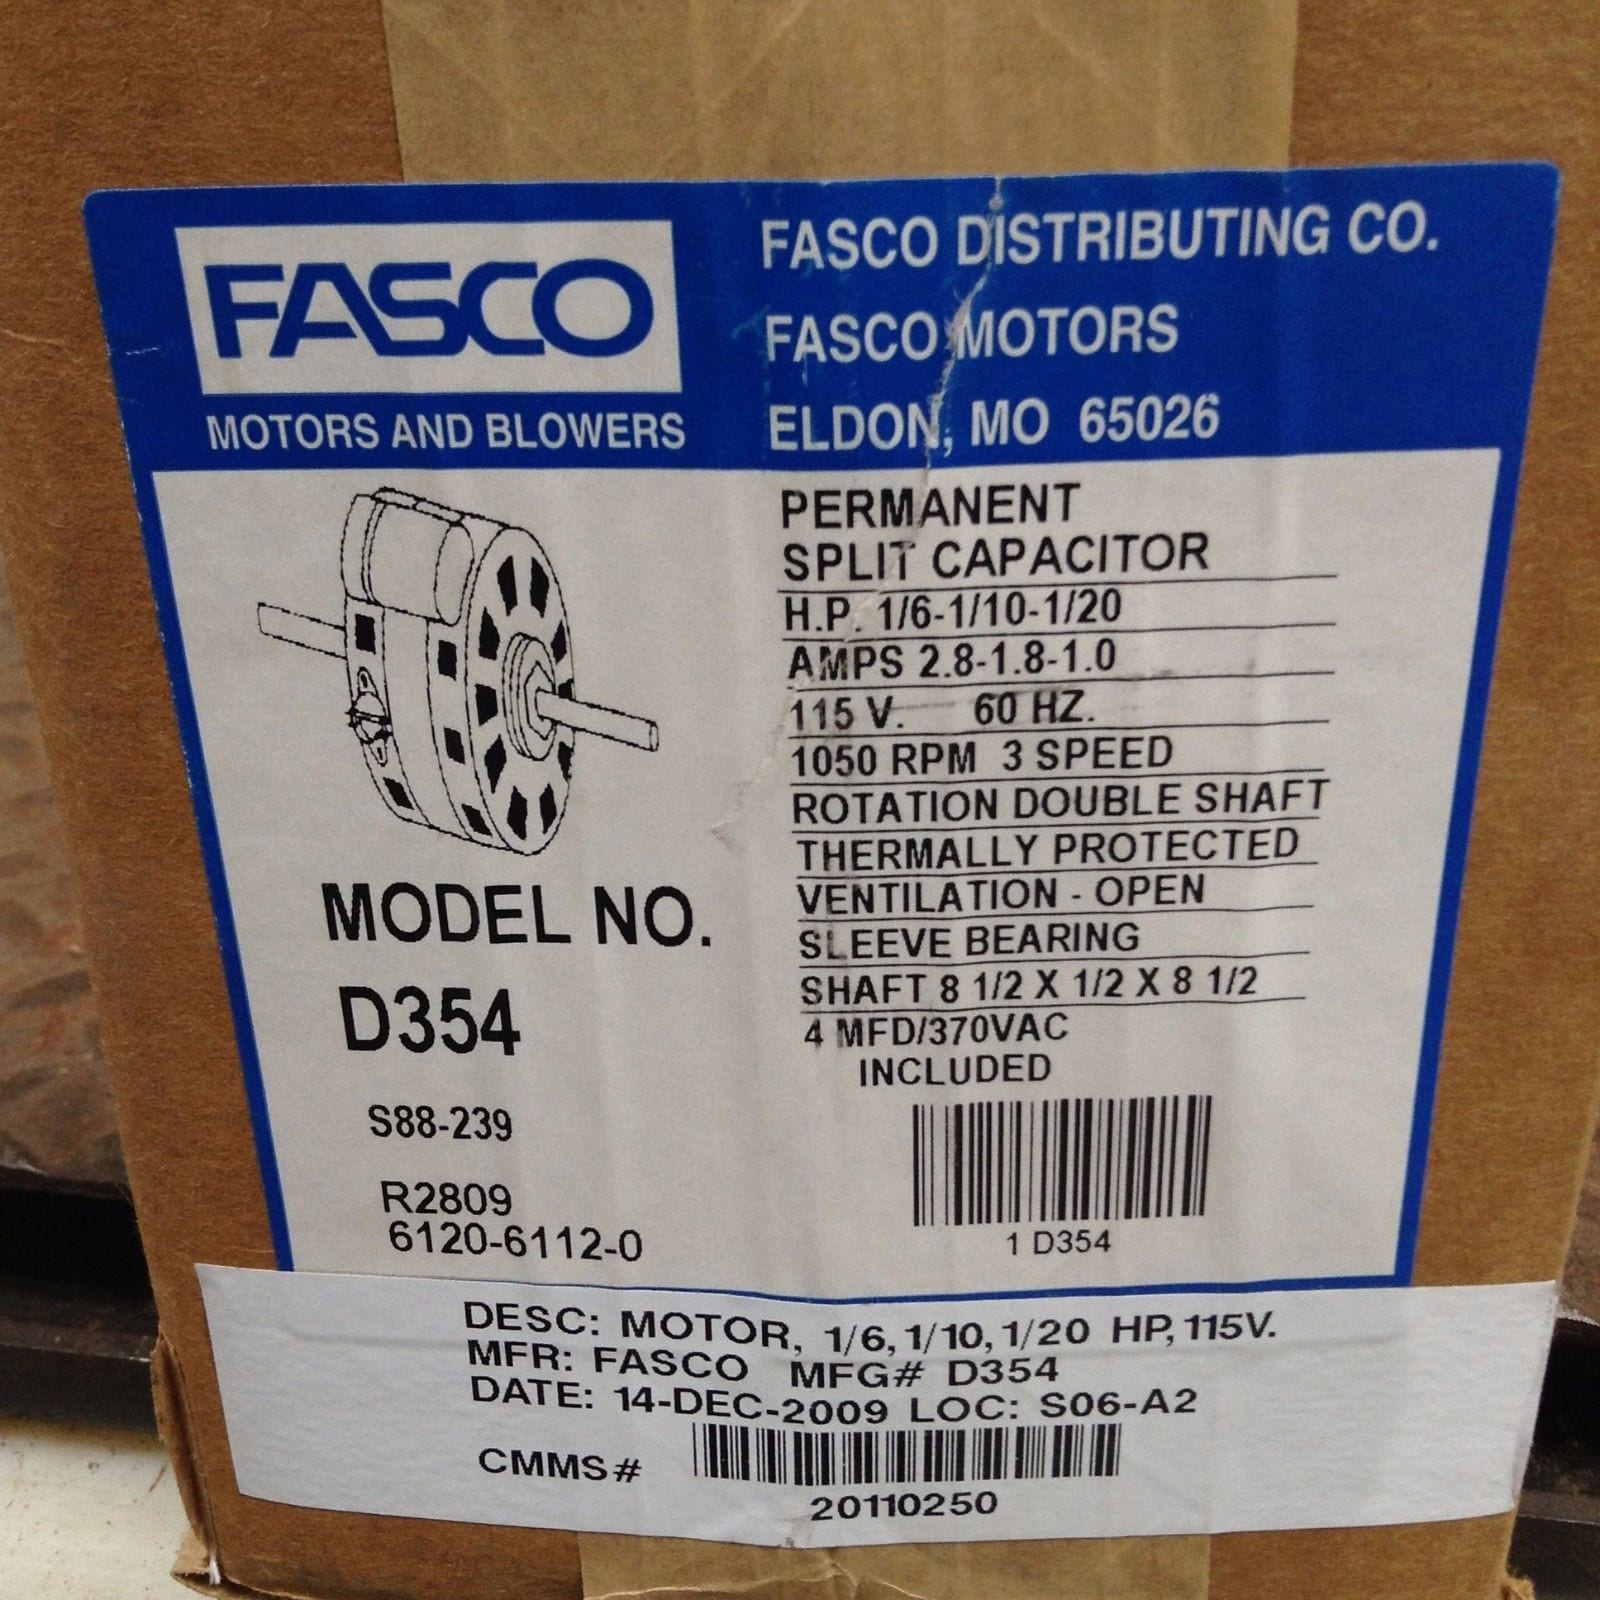 Fasco D354 Double Shaft Blower Motor 1/6-1/10-1/20HP 1050RPM 115V ...